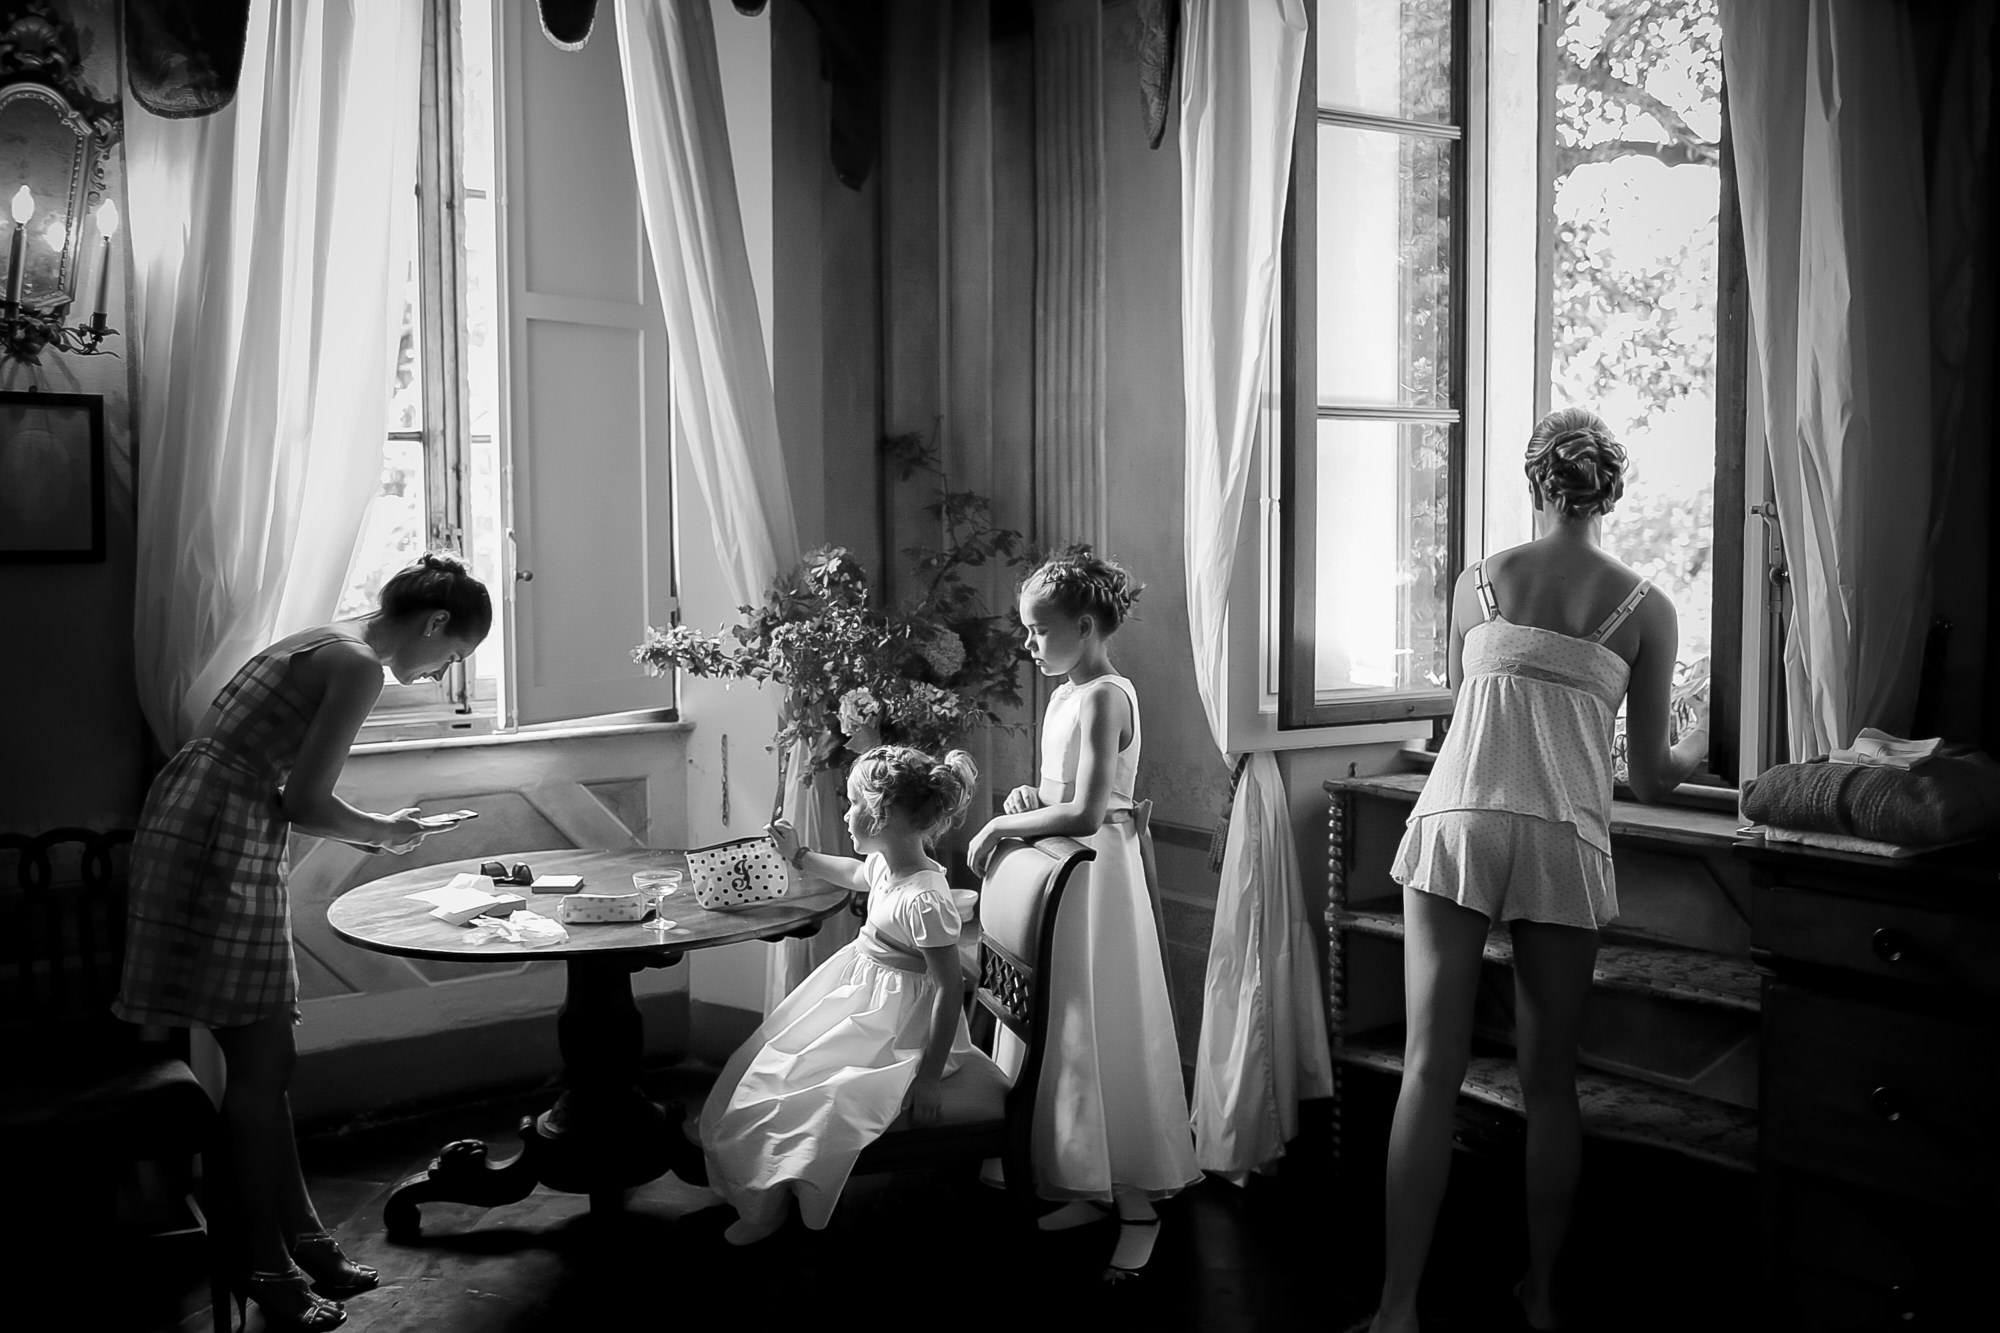 Kids getting ready with bride photo by David Bastianoni